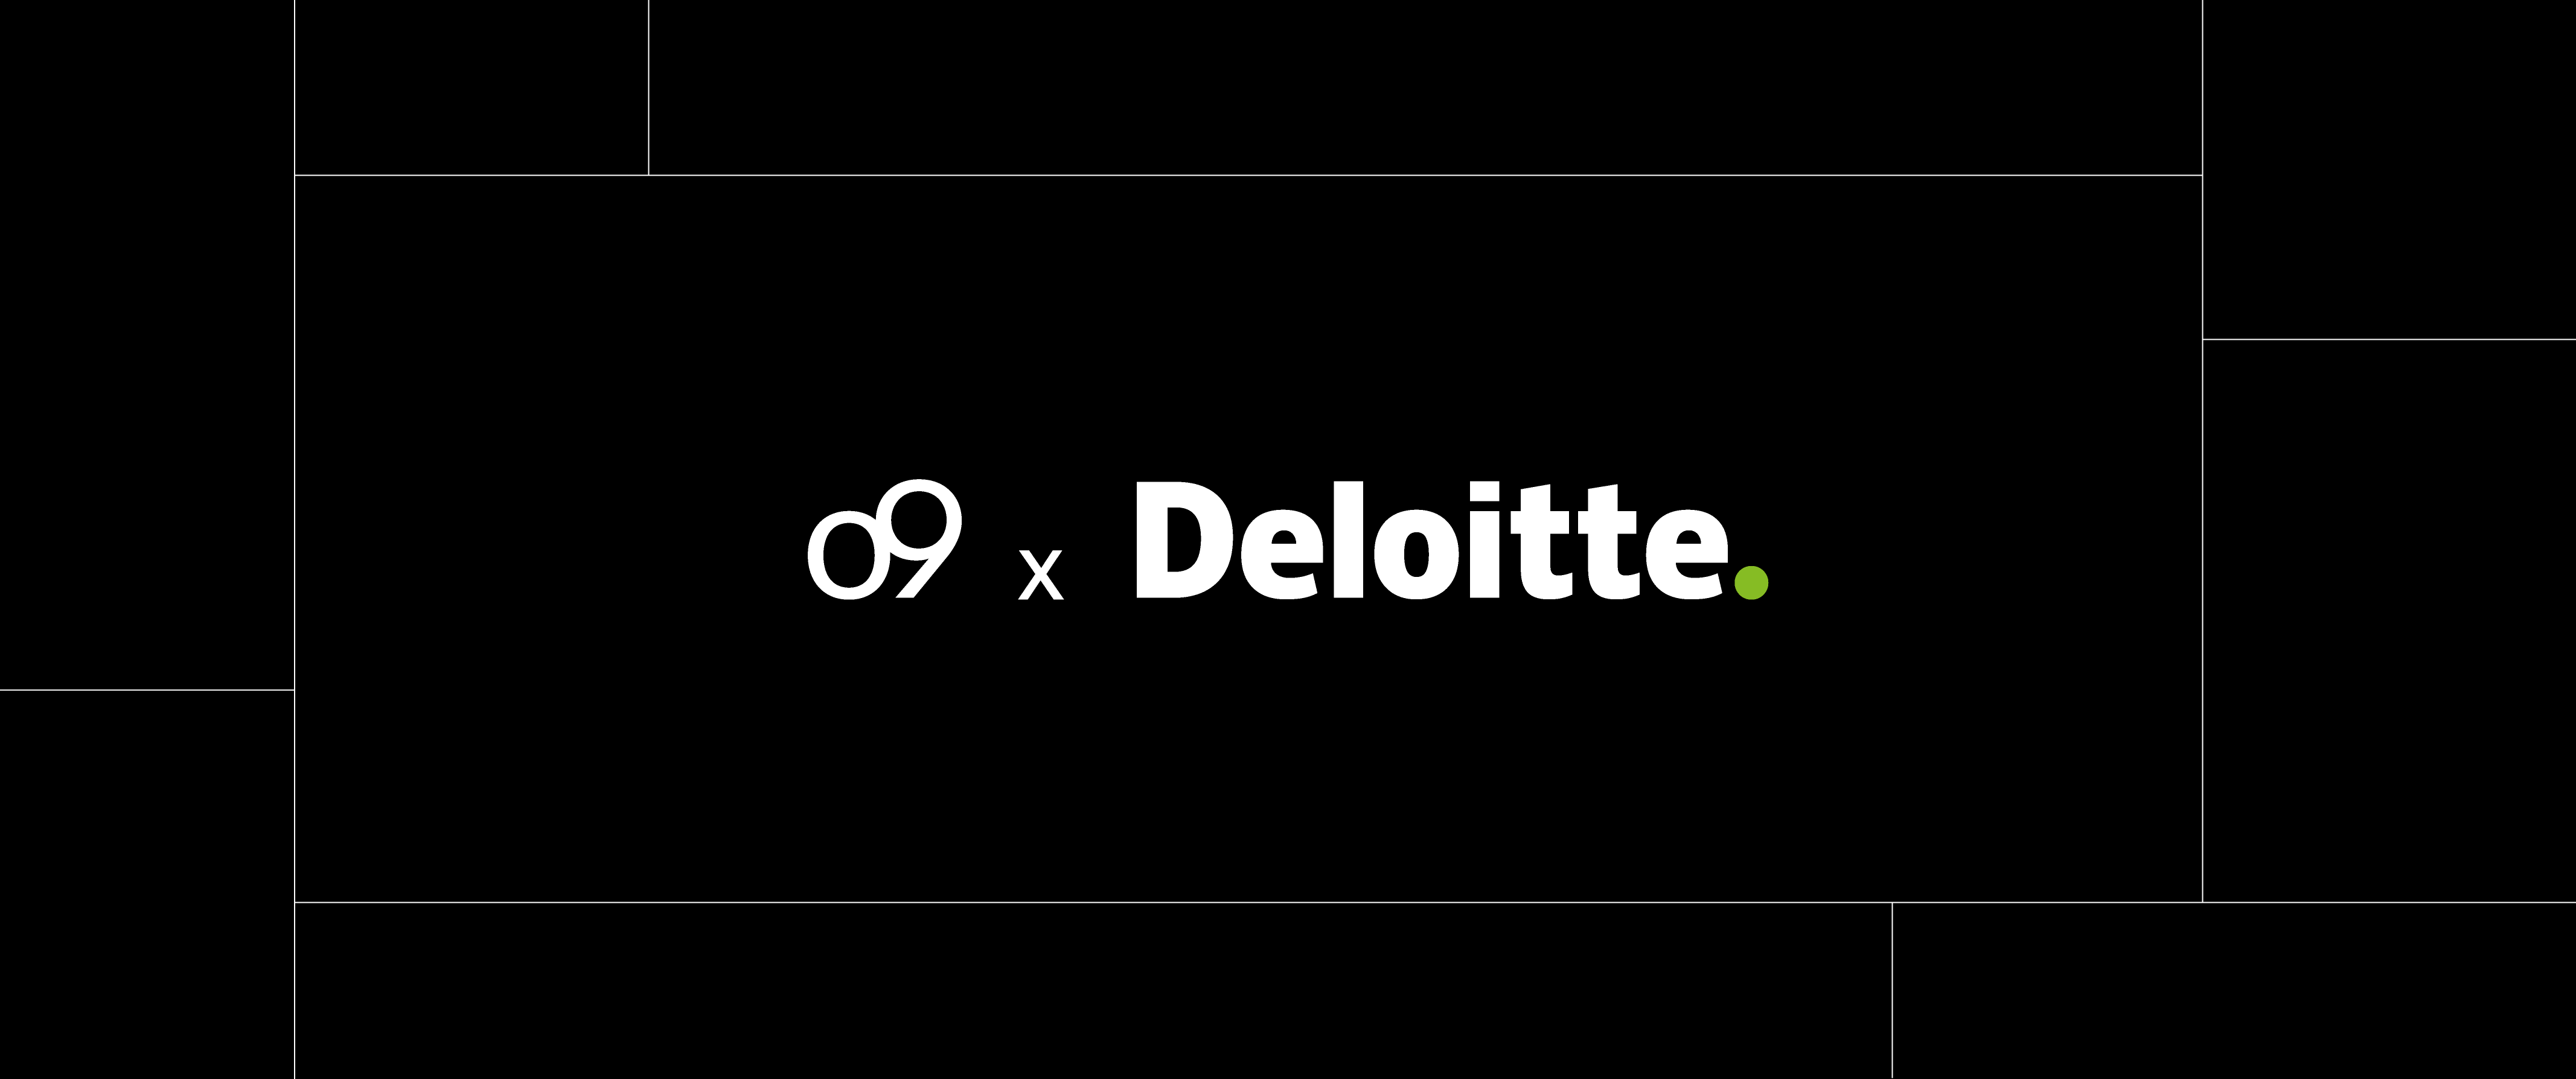 o9 Solutions and Deloitte Announce Formal Alliance